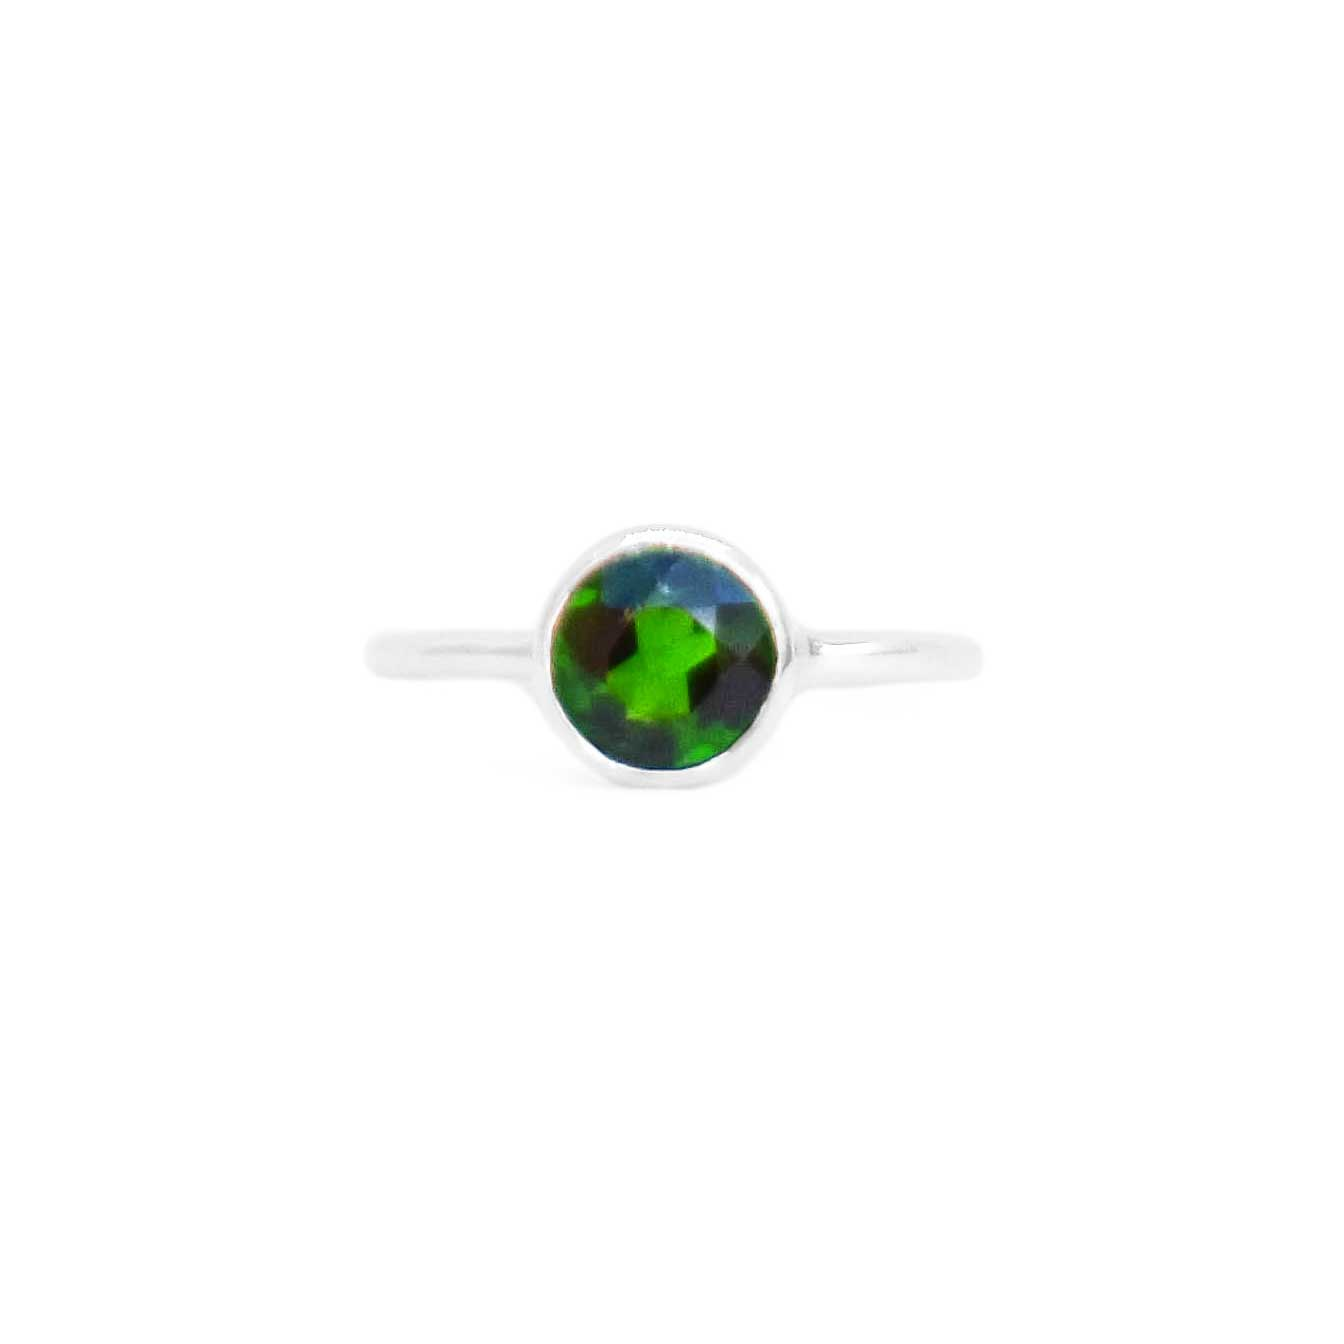 925 Silver Luxe Series Ring - Kaari (Chrome Diopside)